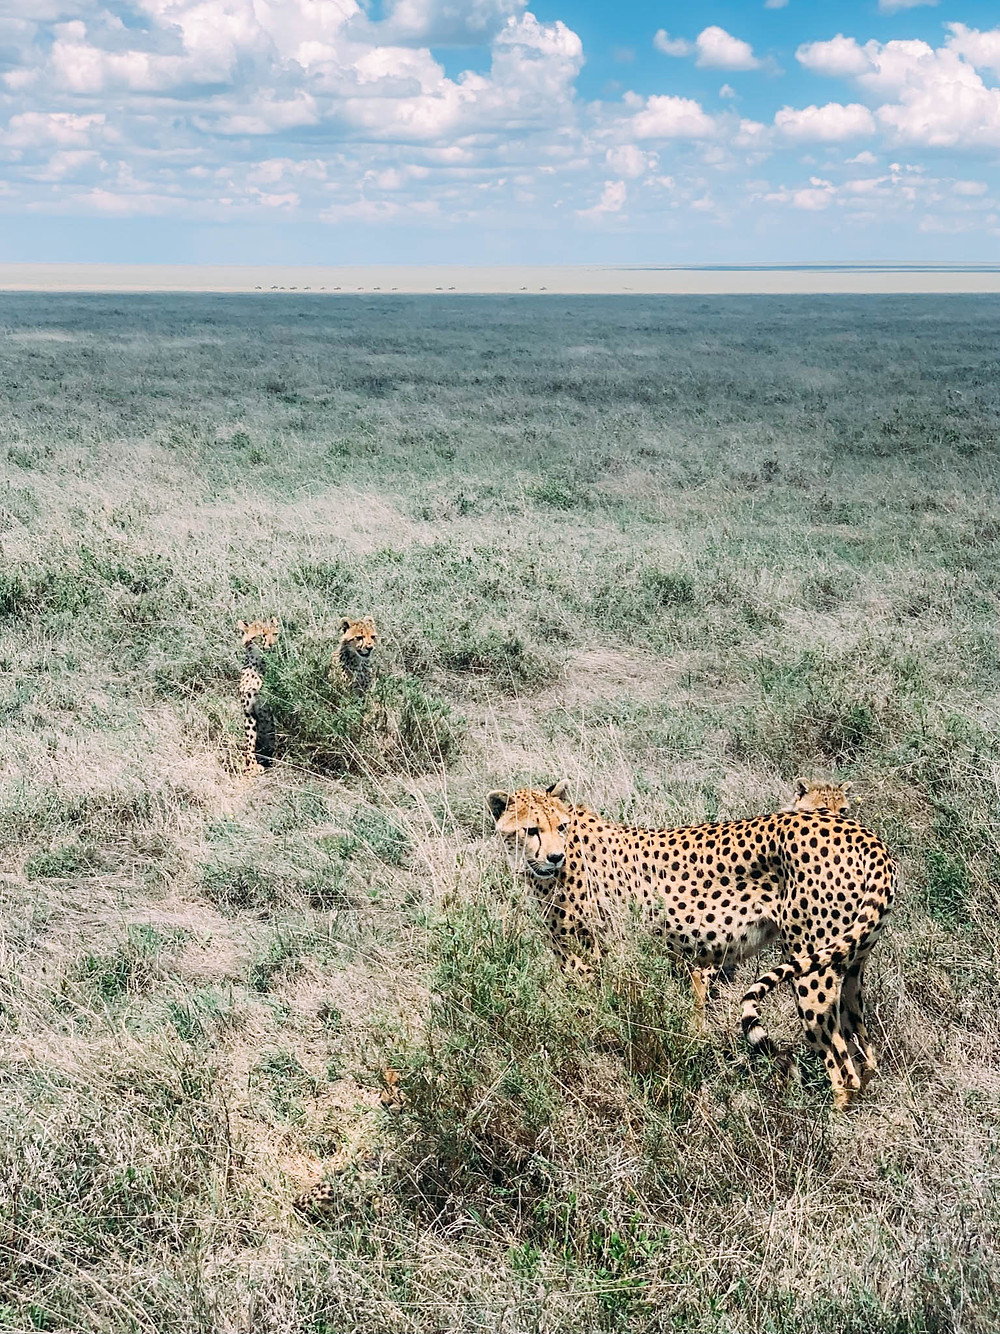 A cheetah mama and her playful cubs - very tough to see when blending into the tall grass